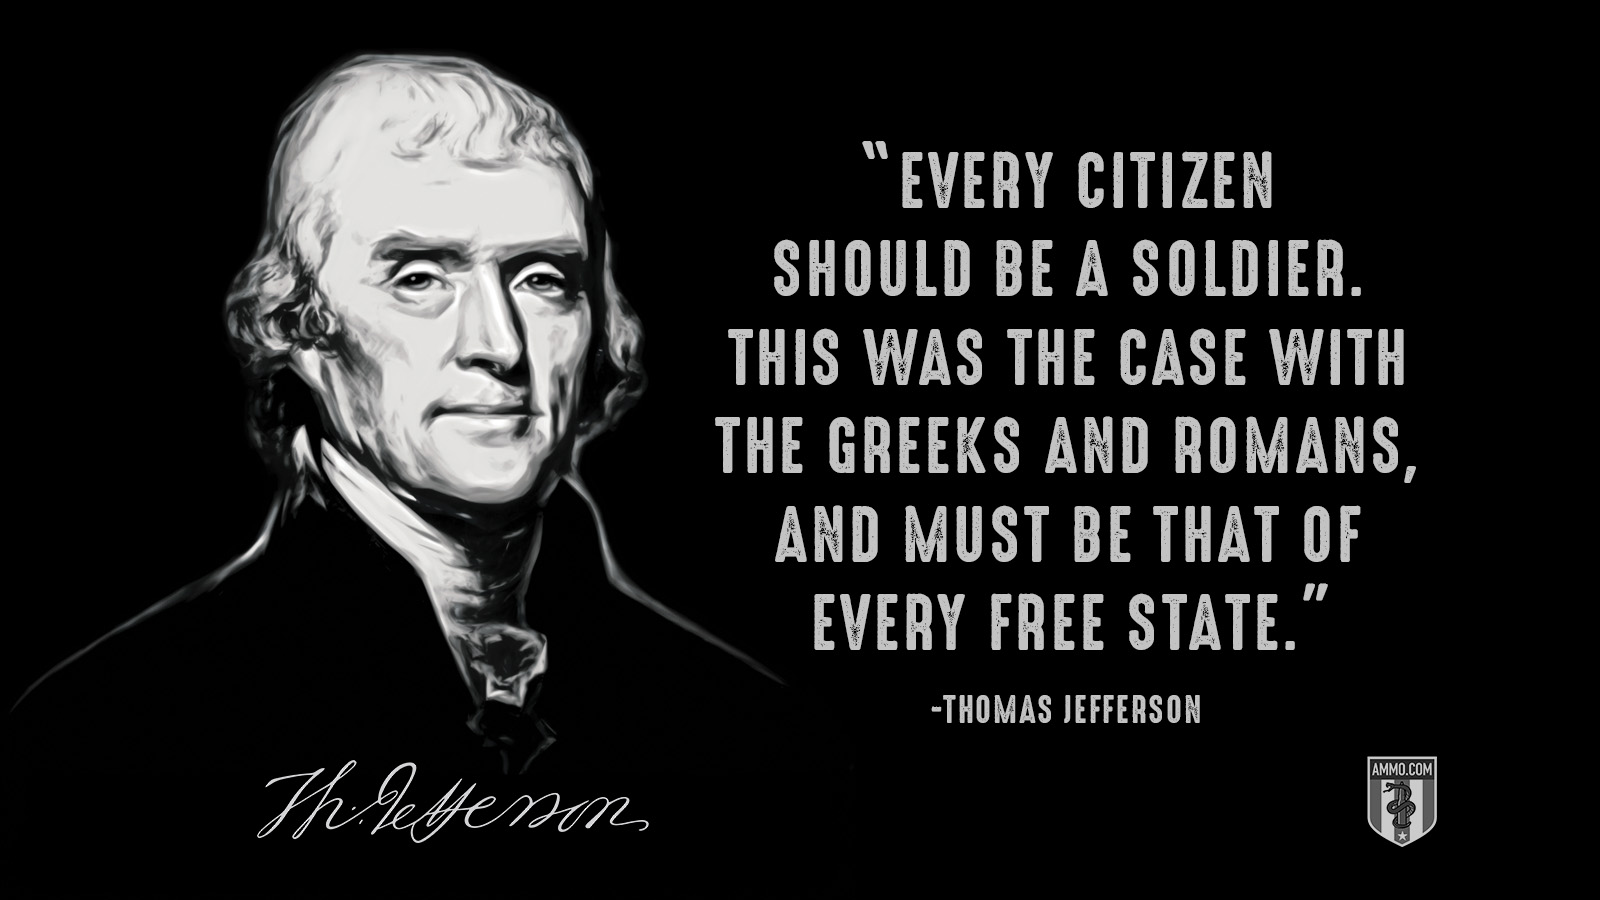 """Every citizen should be a soldier. This was the case with the Greeks and Romans, and must be that of every free state."" - Thomas Jefferson"